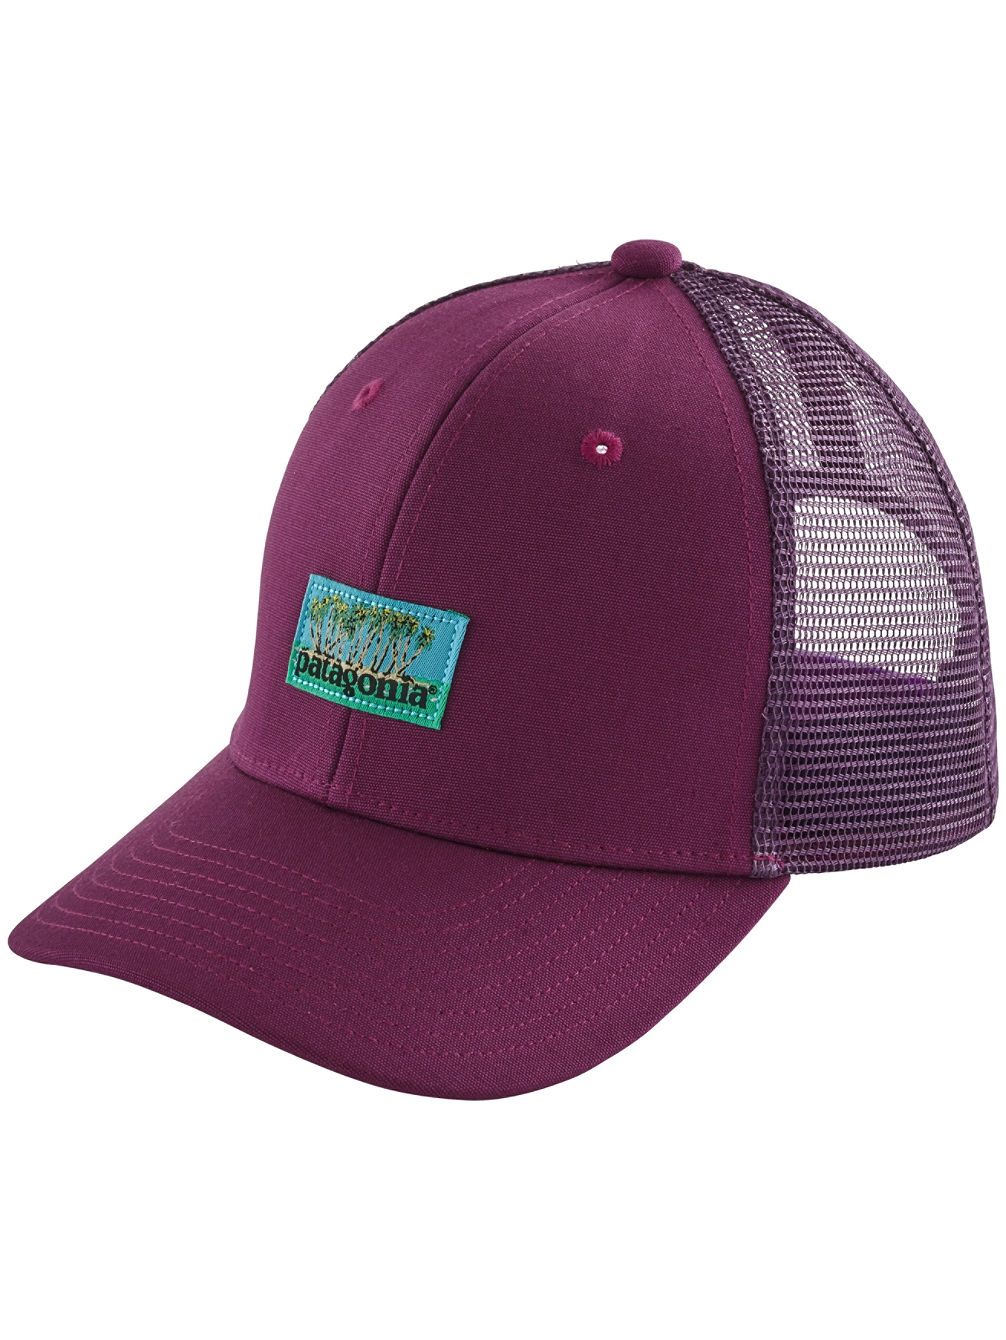 Trucker Cap Youth